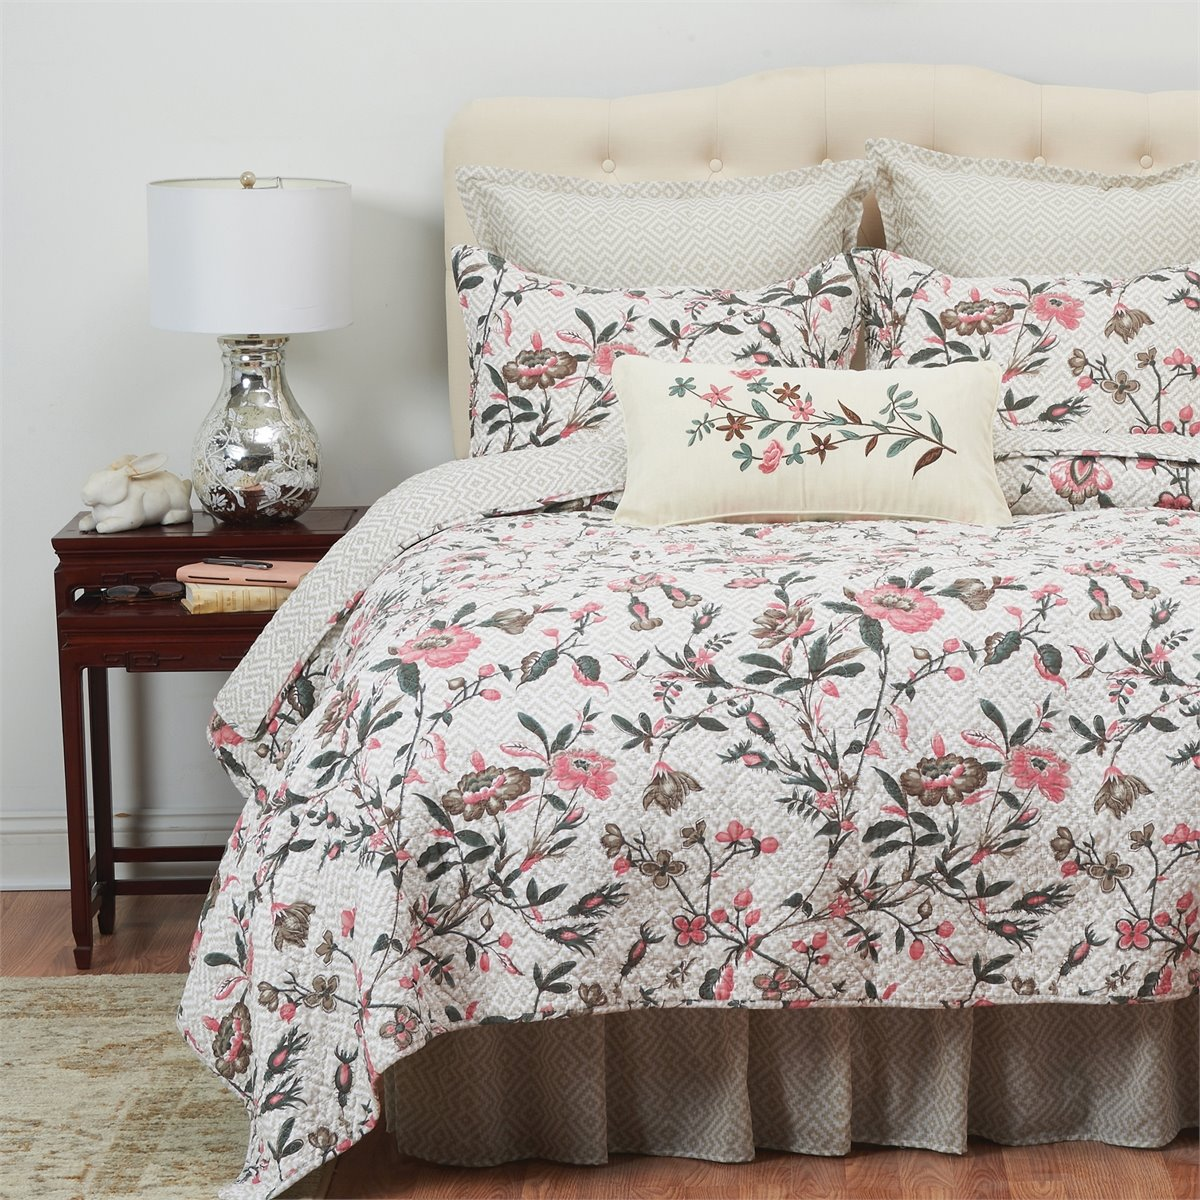 Blair Garden 3 Piece Queen Quilt Set